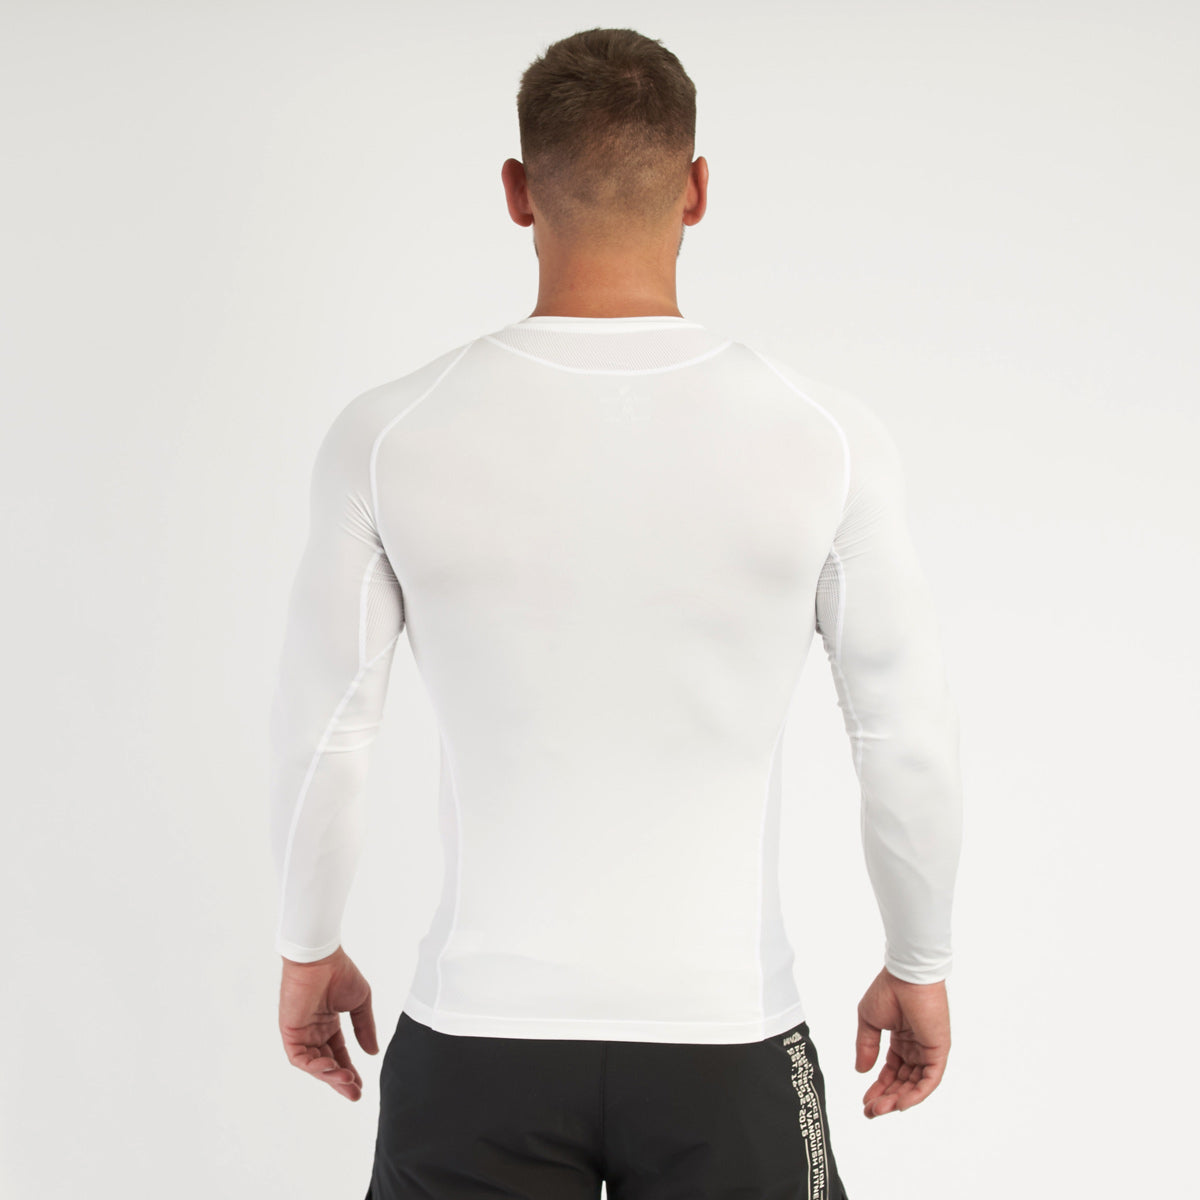 Vanquish Utility Men's White Long Sleeved Compression T Shirt